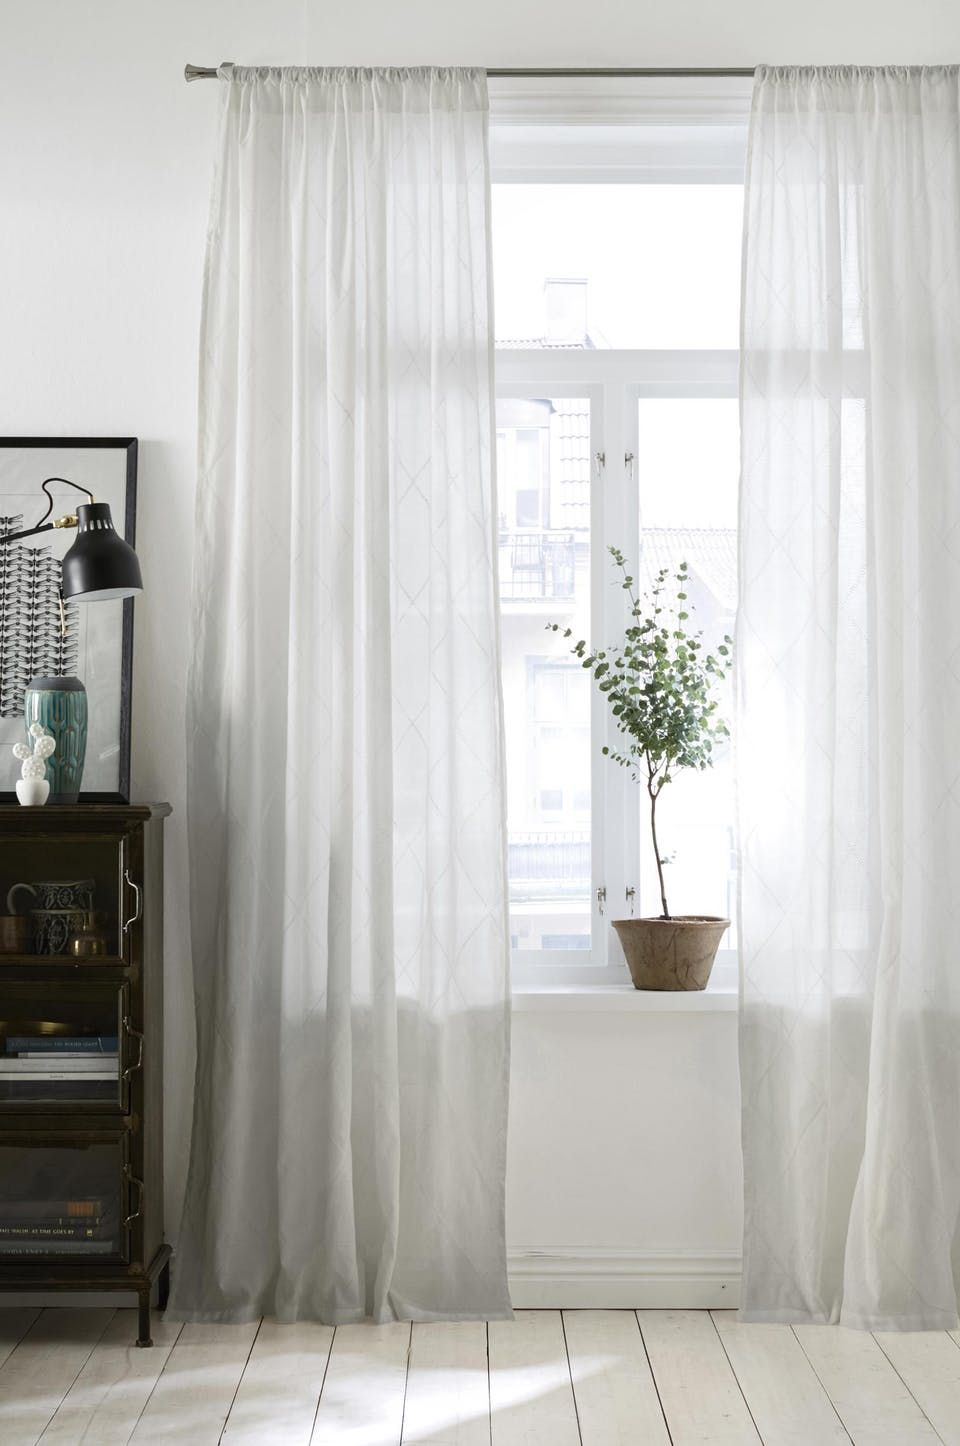 Give Your Rooms A Bright Airy Feeling With Thin White Curtains That Goes All The Way To Floor